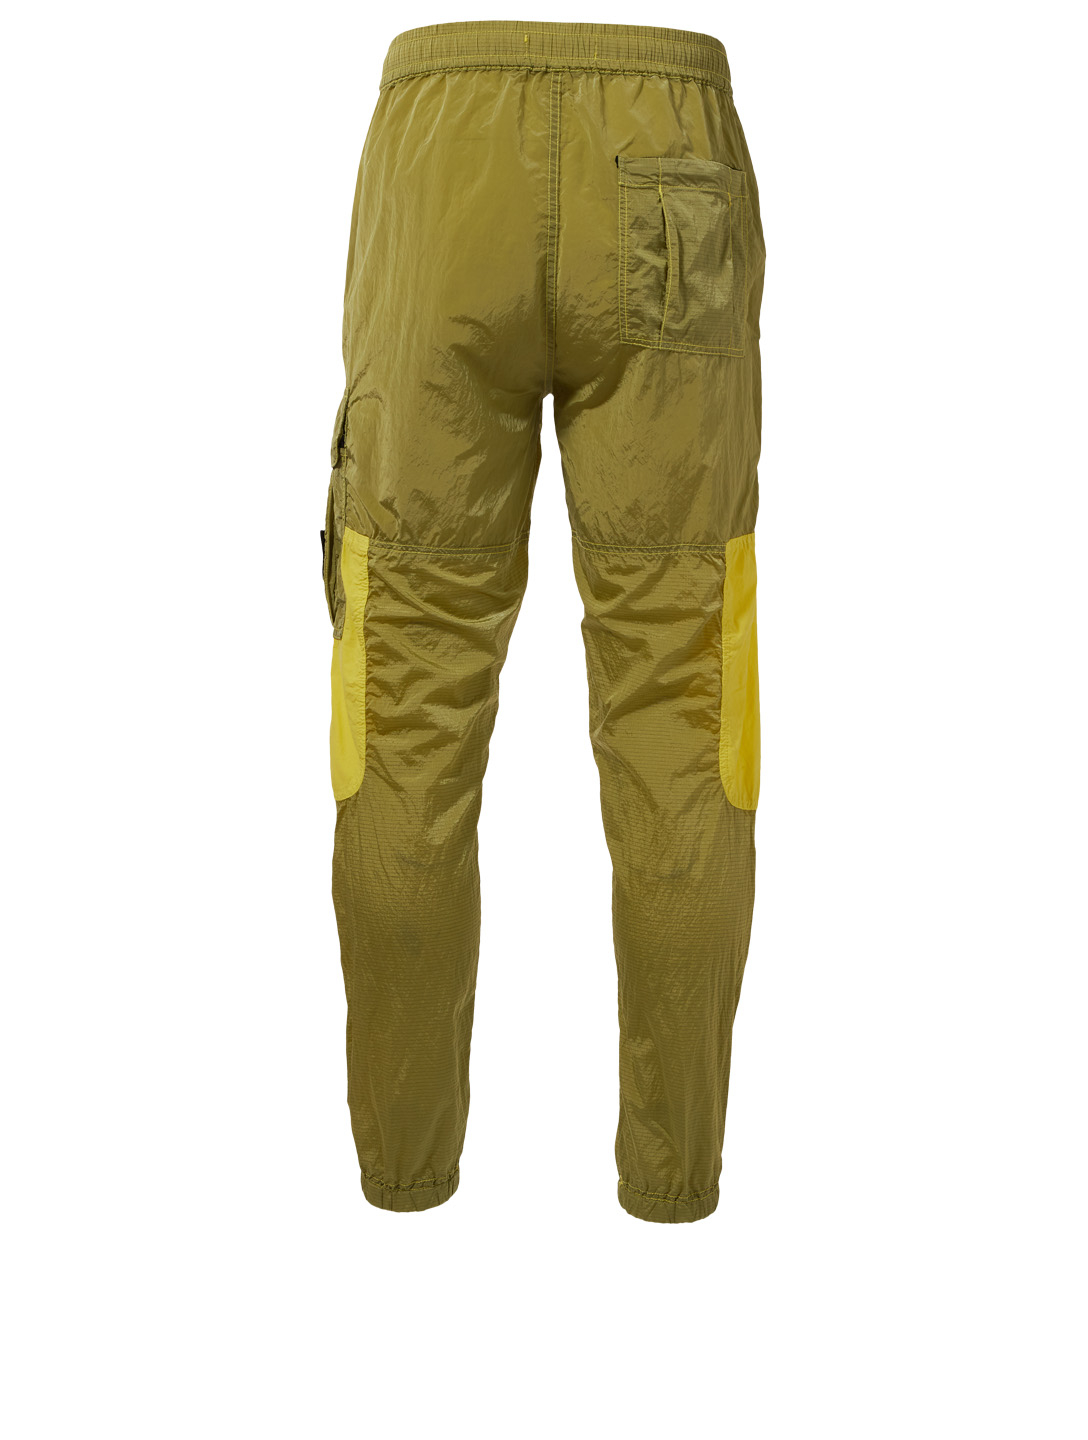 STONE ISLAND Nylon Metal Jogger Pants Men's Yellow